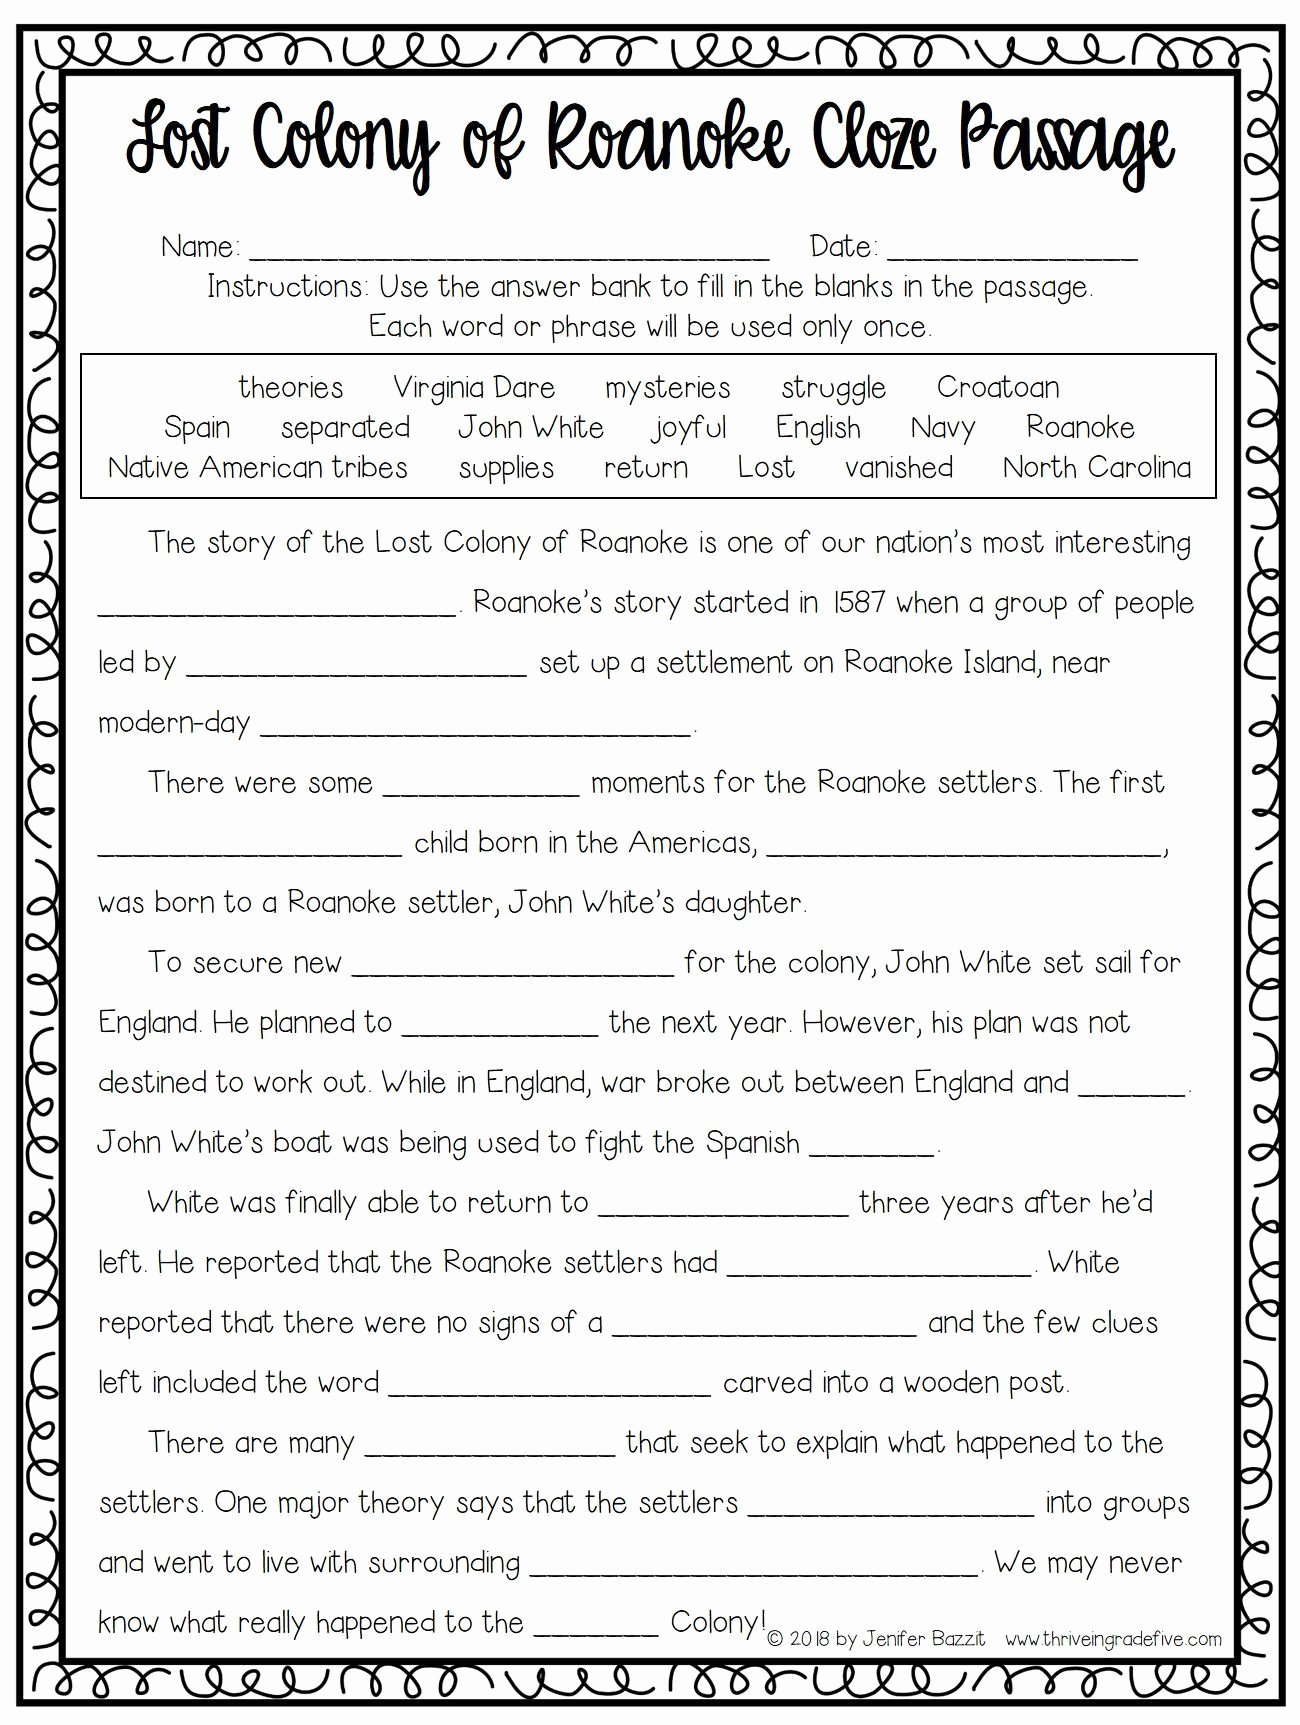 Jamestown Colony Worksheet 5th Grade Kids Lost Colony Of Roanoke Activity Free